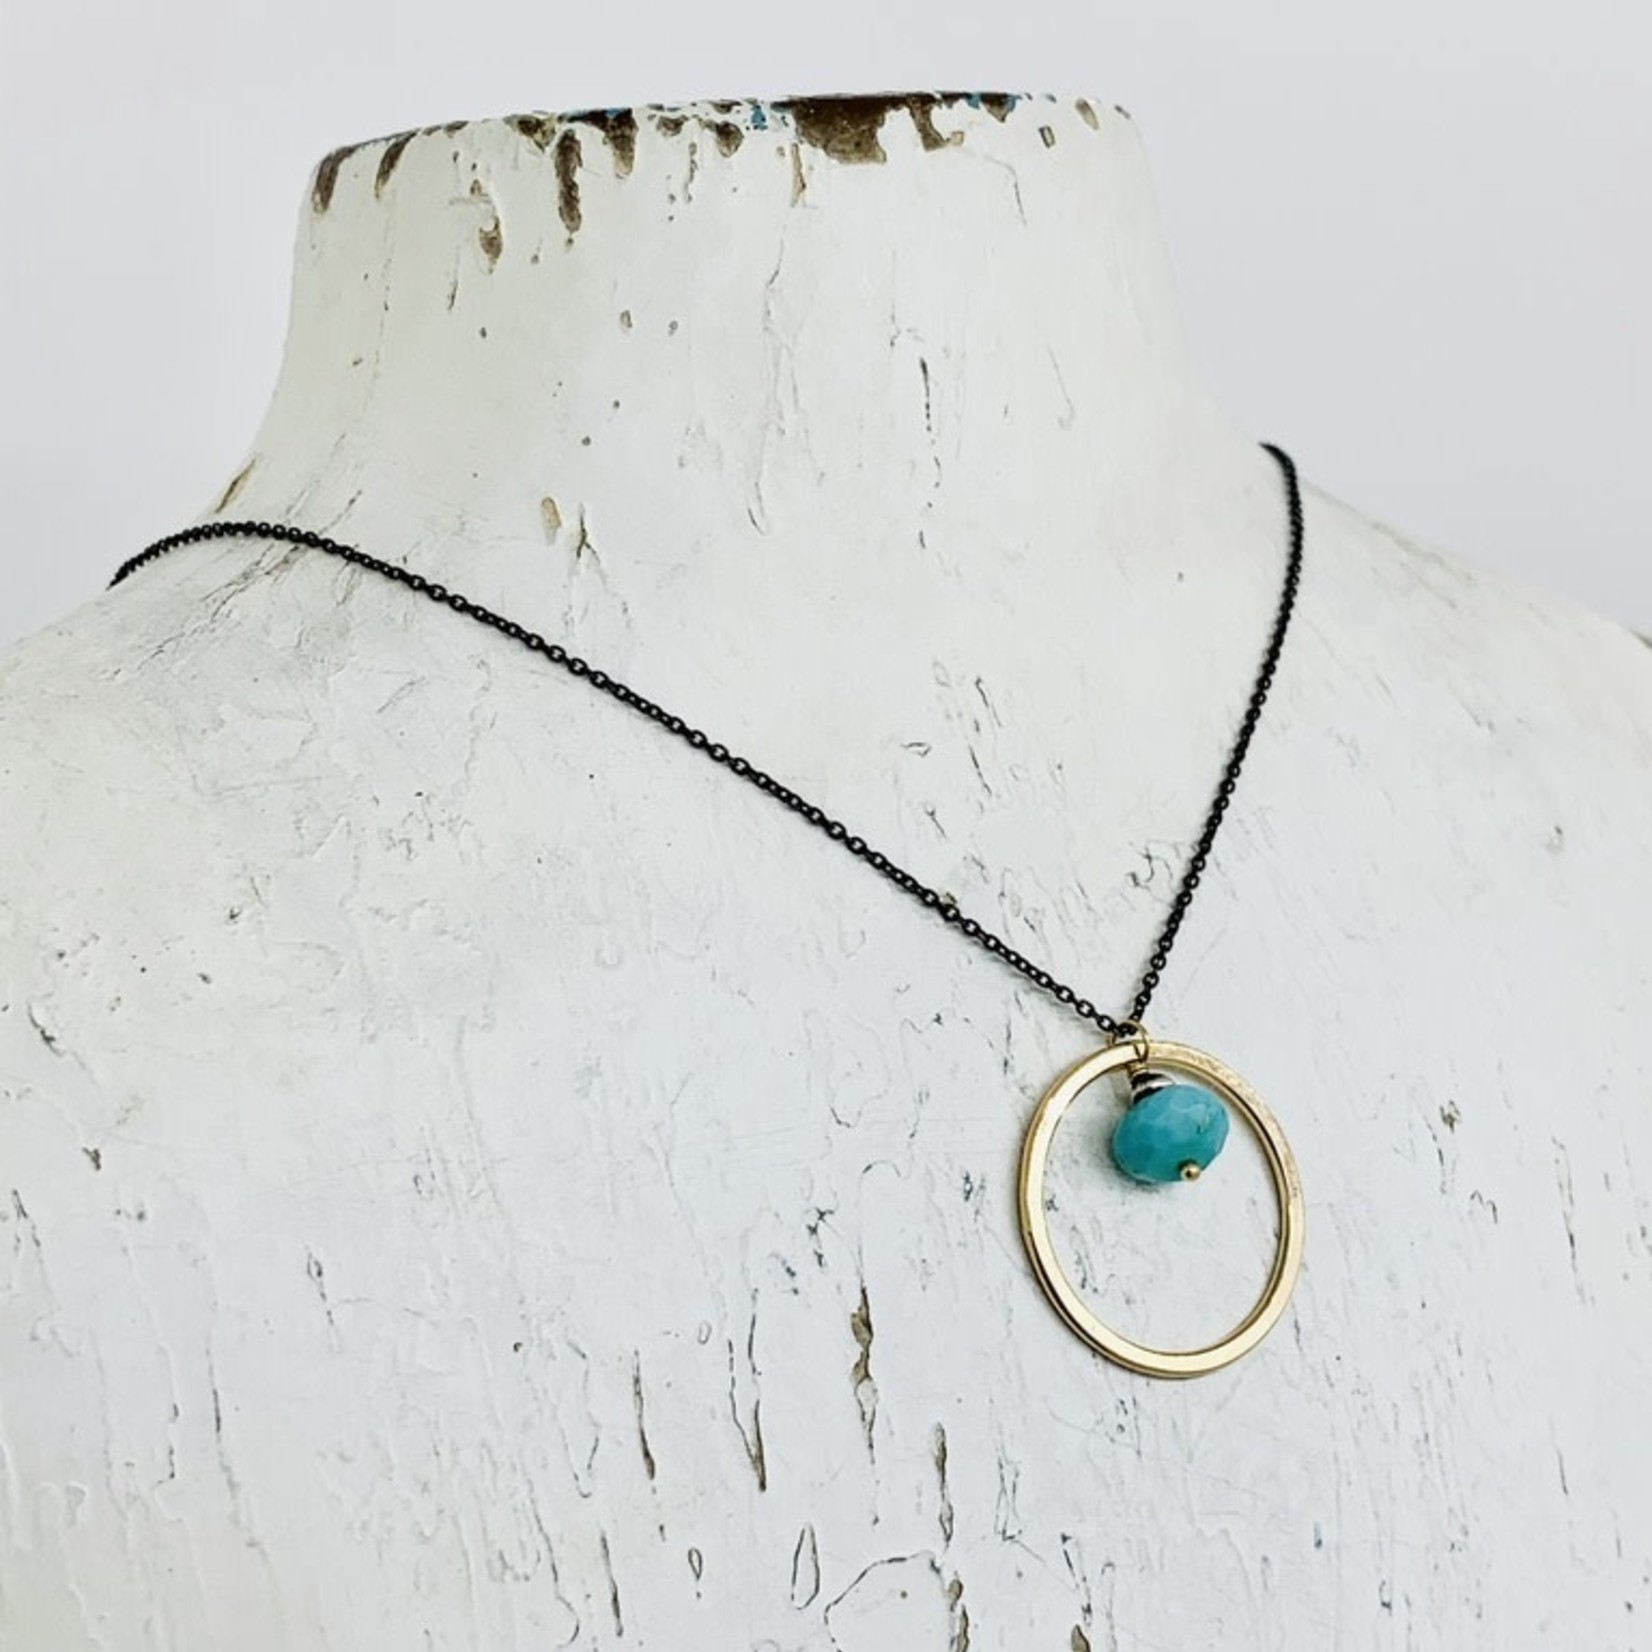 Handmade Necklace with 14k Gold Filled Circle with 8mm Faceted Arizona Turquoise on Oxidized Sterling Chain